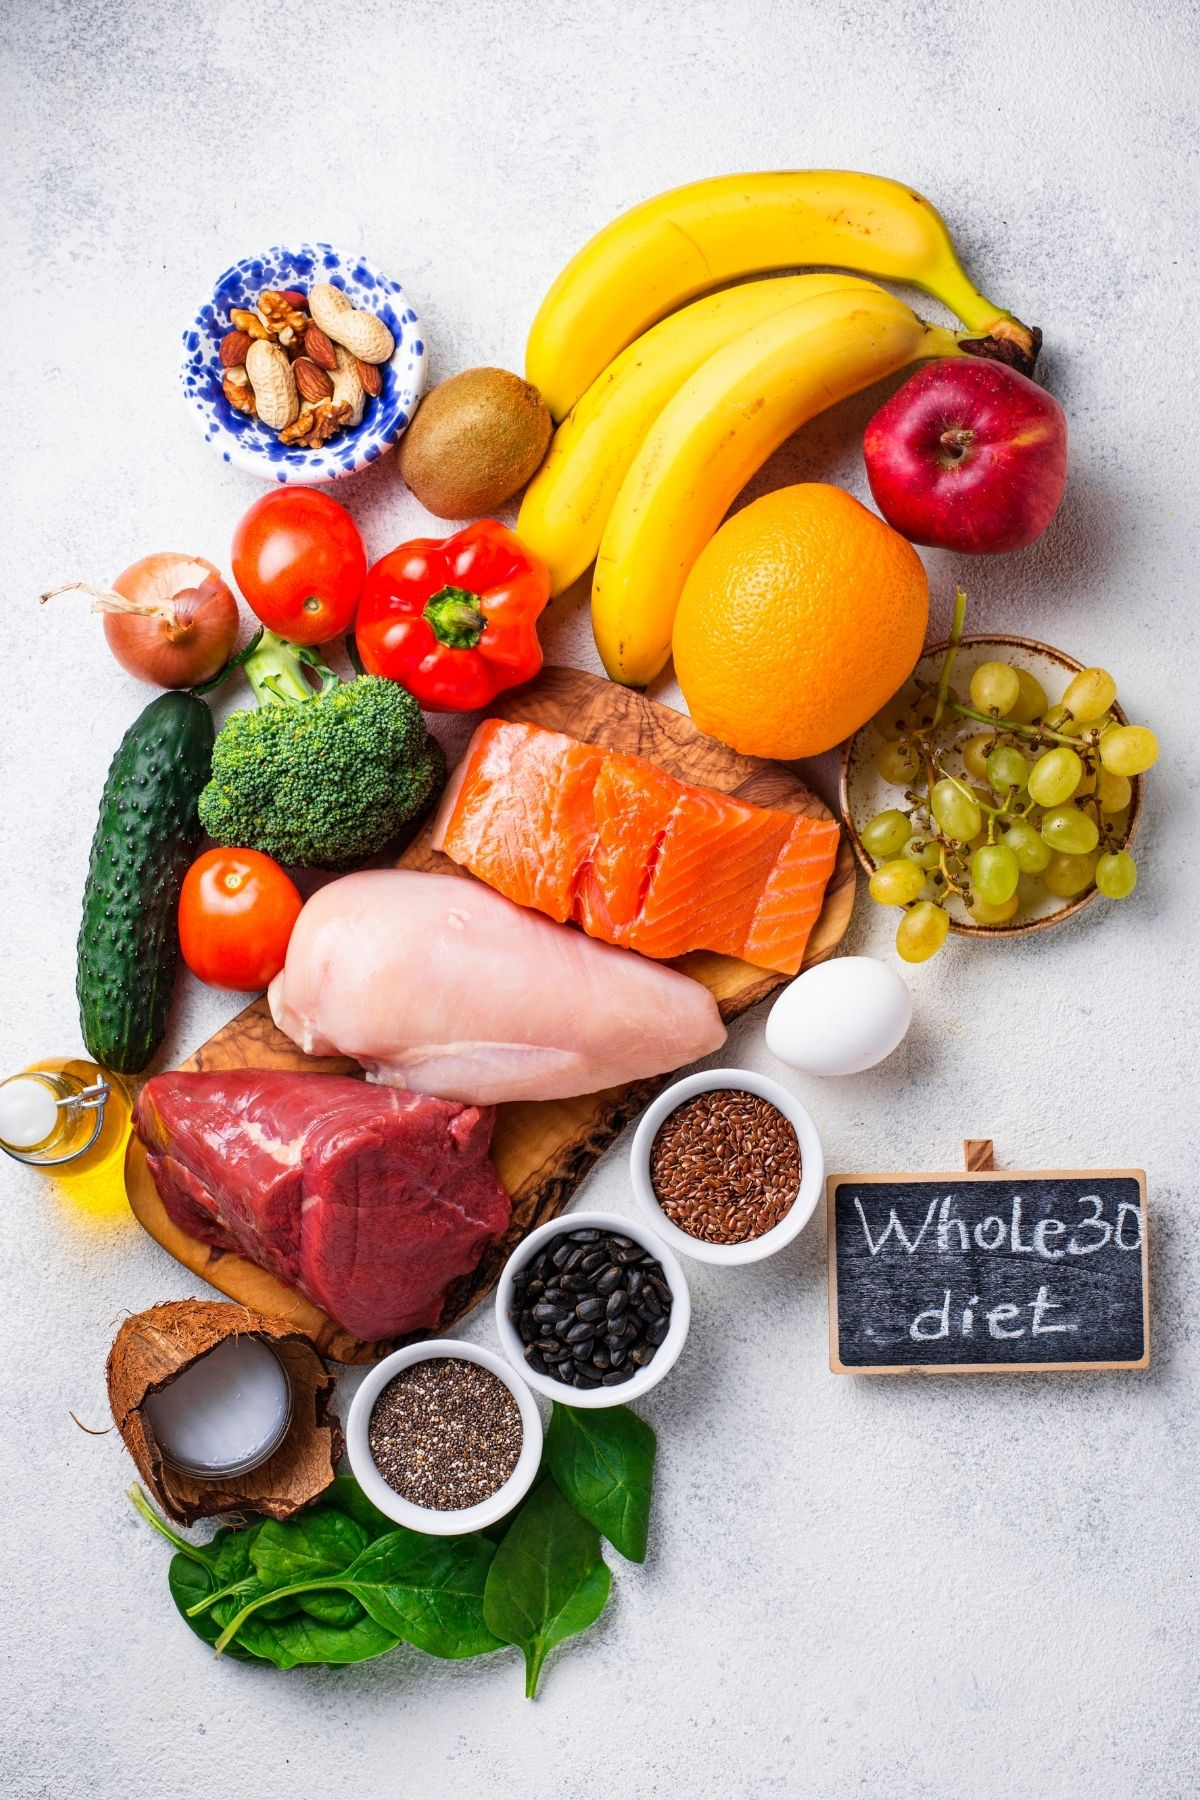 whole30 diet foods on a table